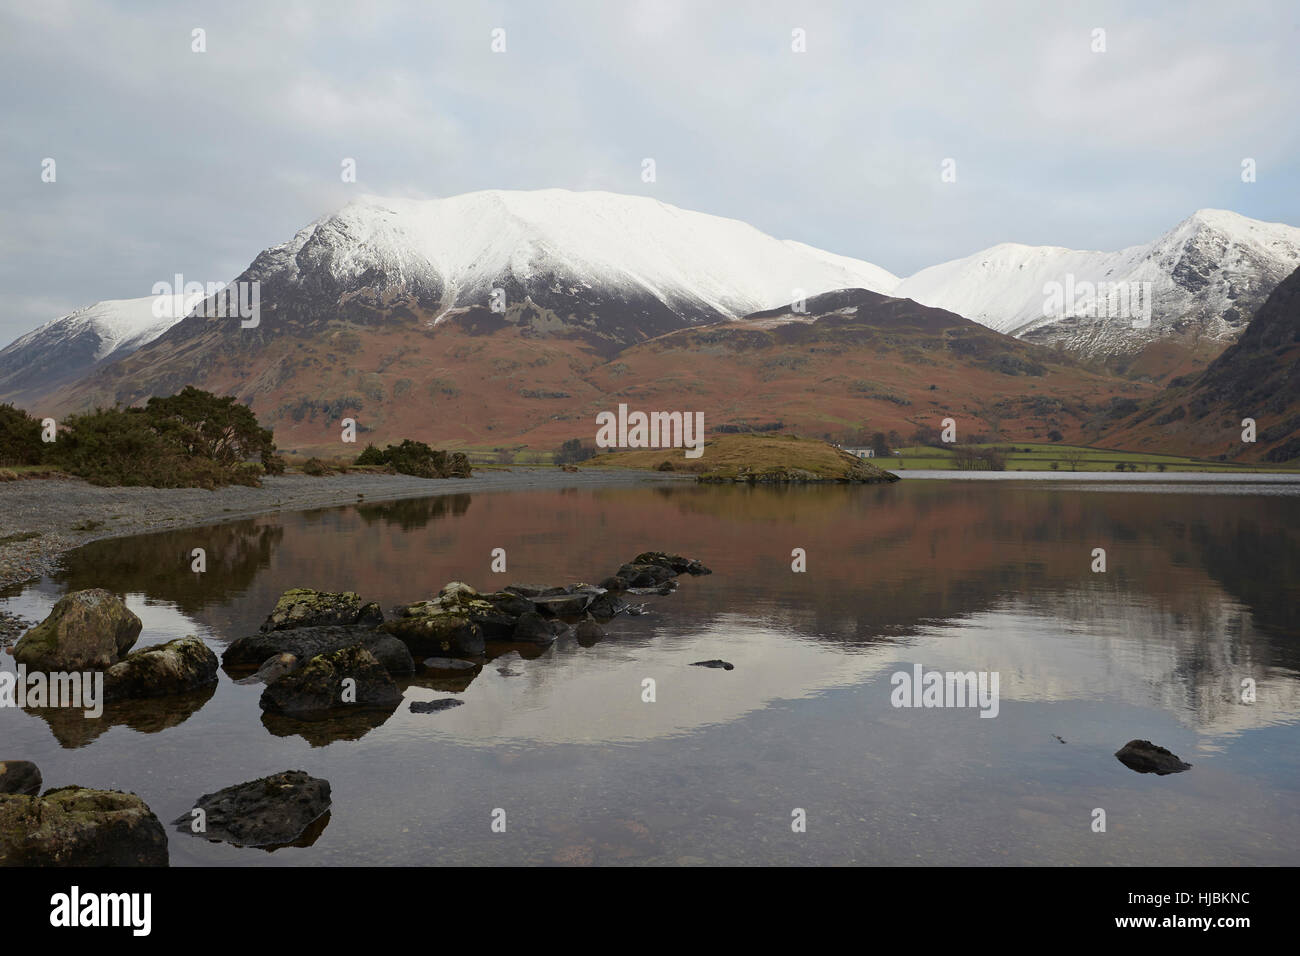 Snow capped mountains, rocks and trees reflected in the calm surface of Crummock Water, Keswick, Cumbria, Lake District, - Stock Image